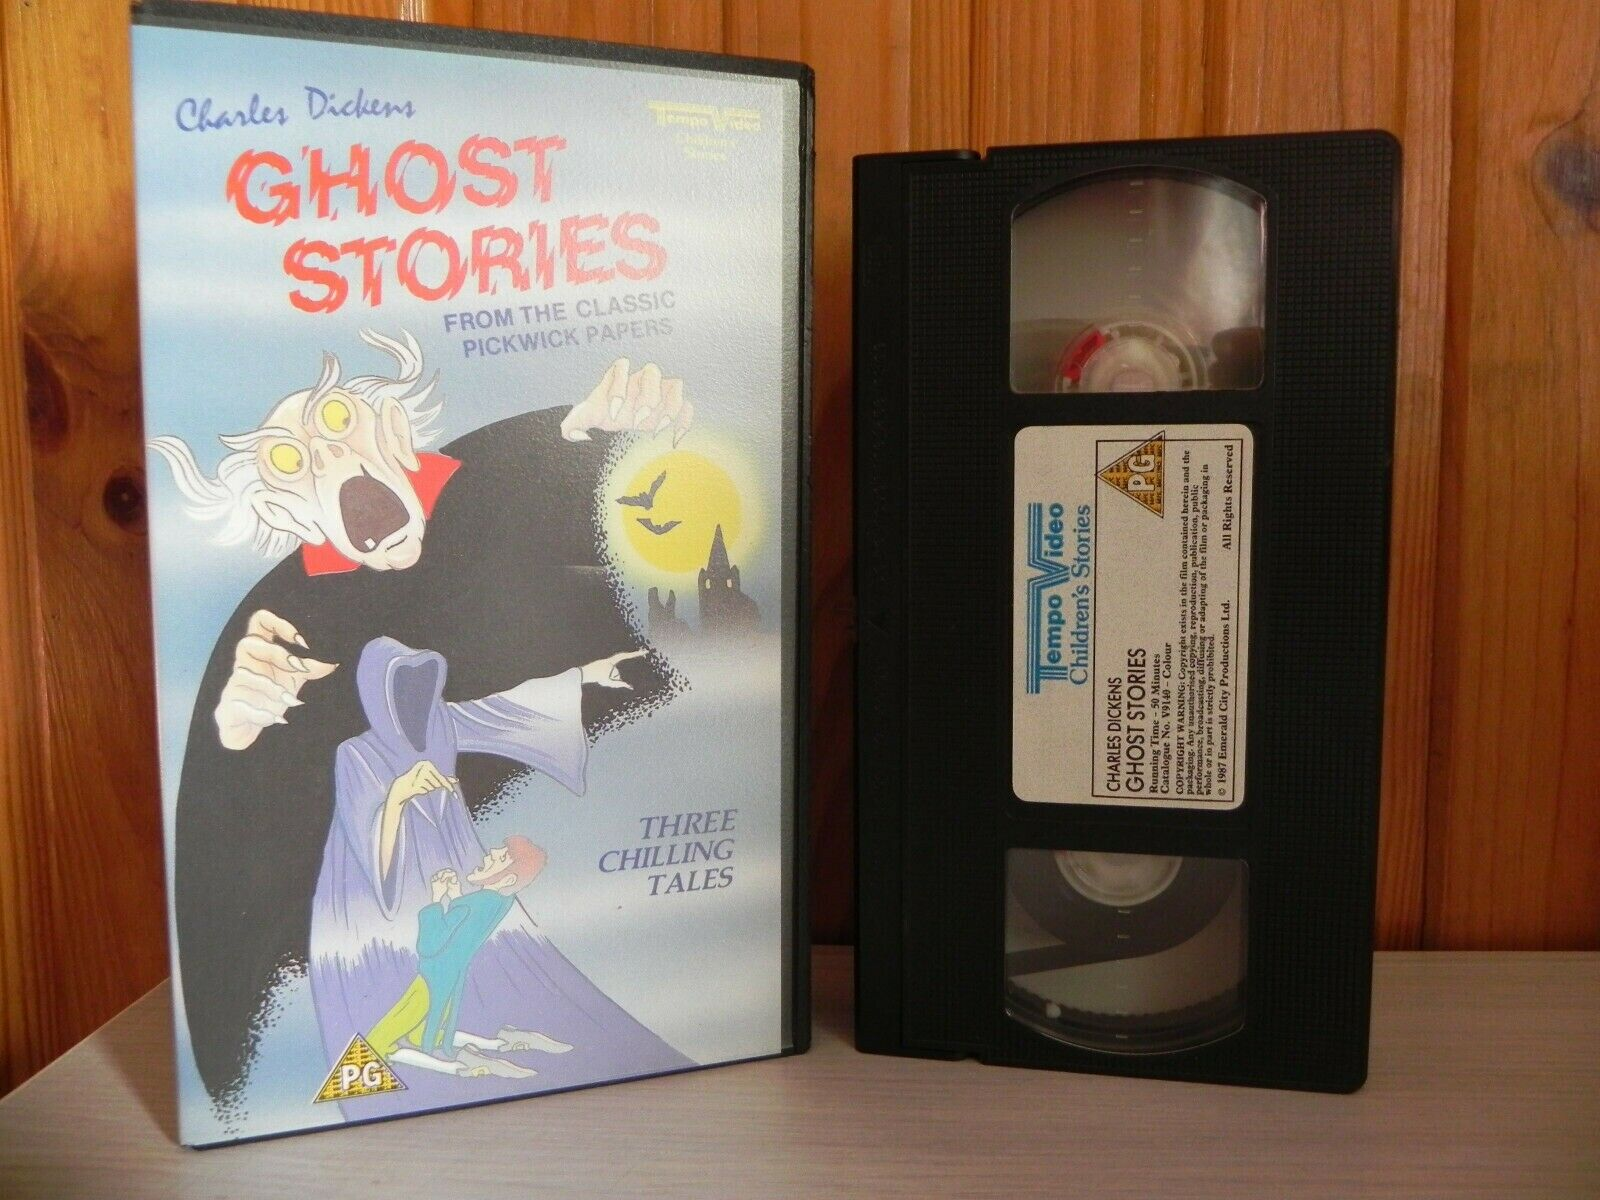 PG Video: 3 Ghost Stories - Charles Dickens (Pickwick Papers) - Children's - VHS